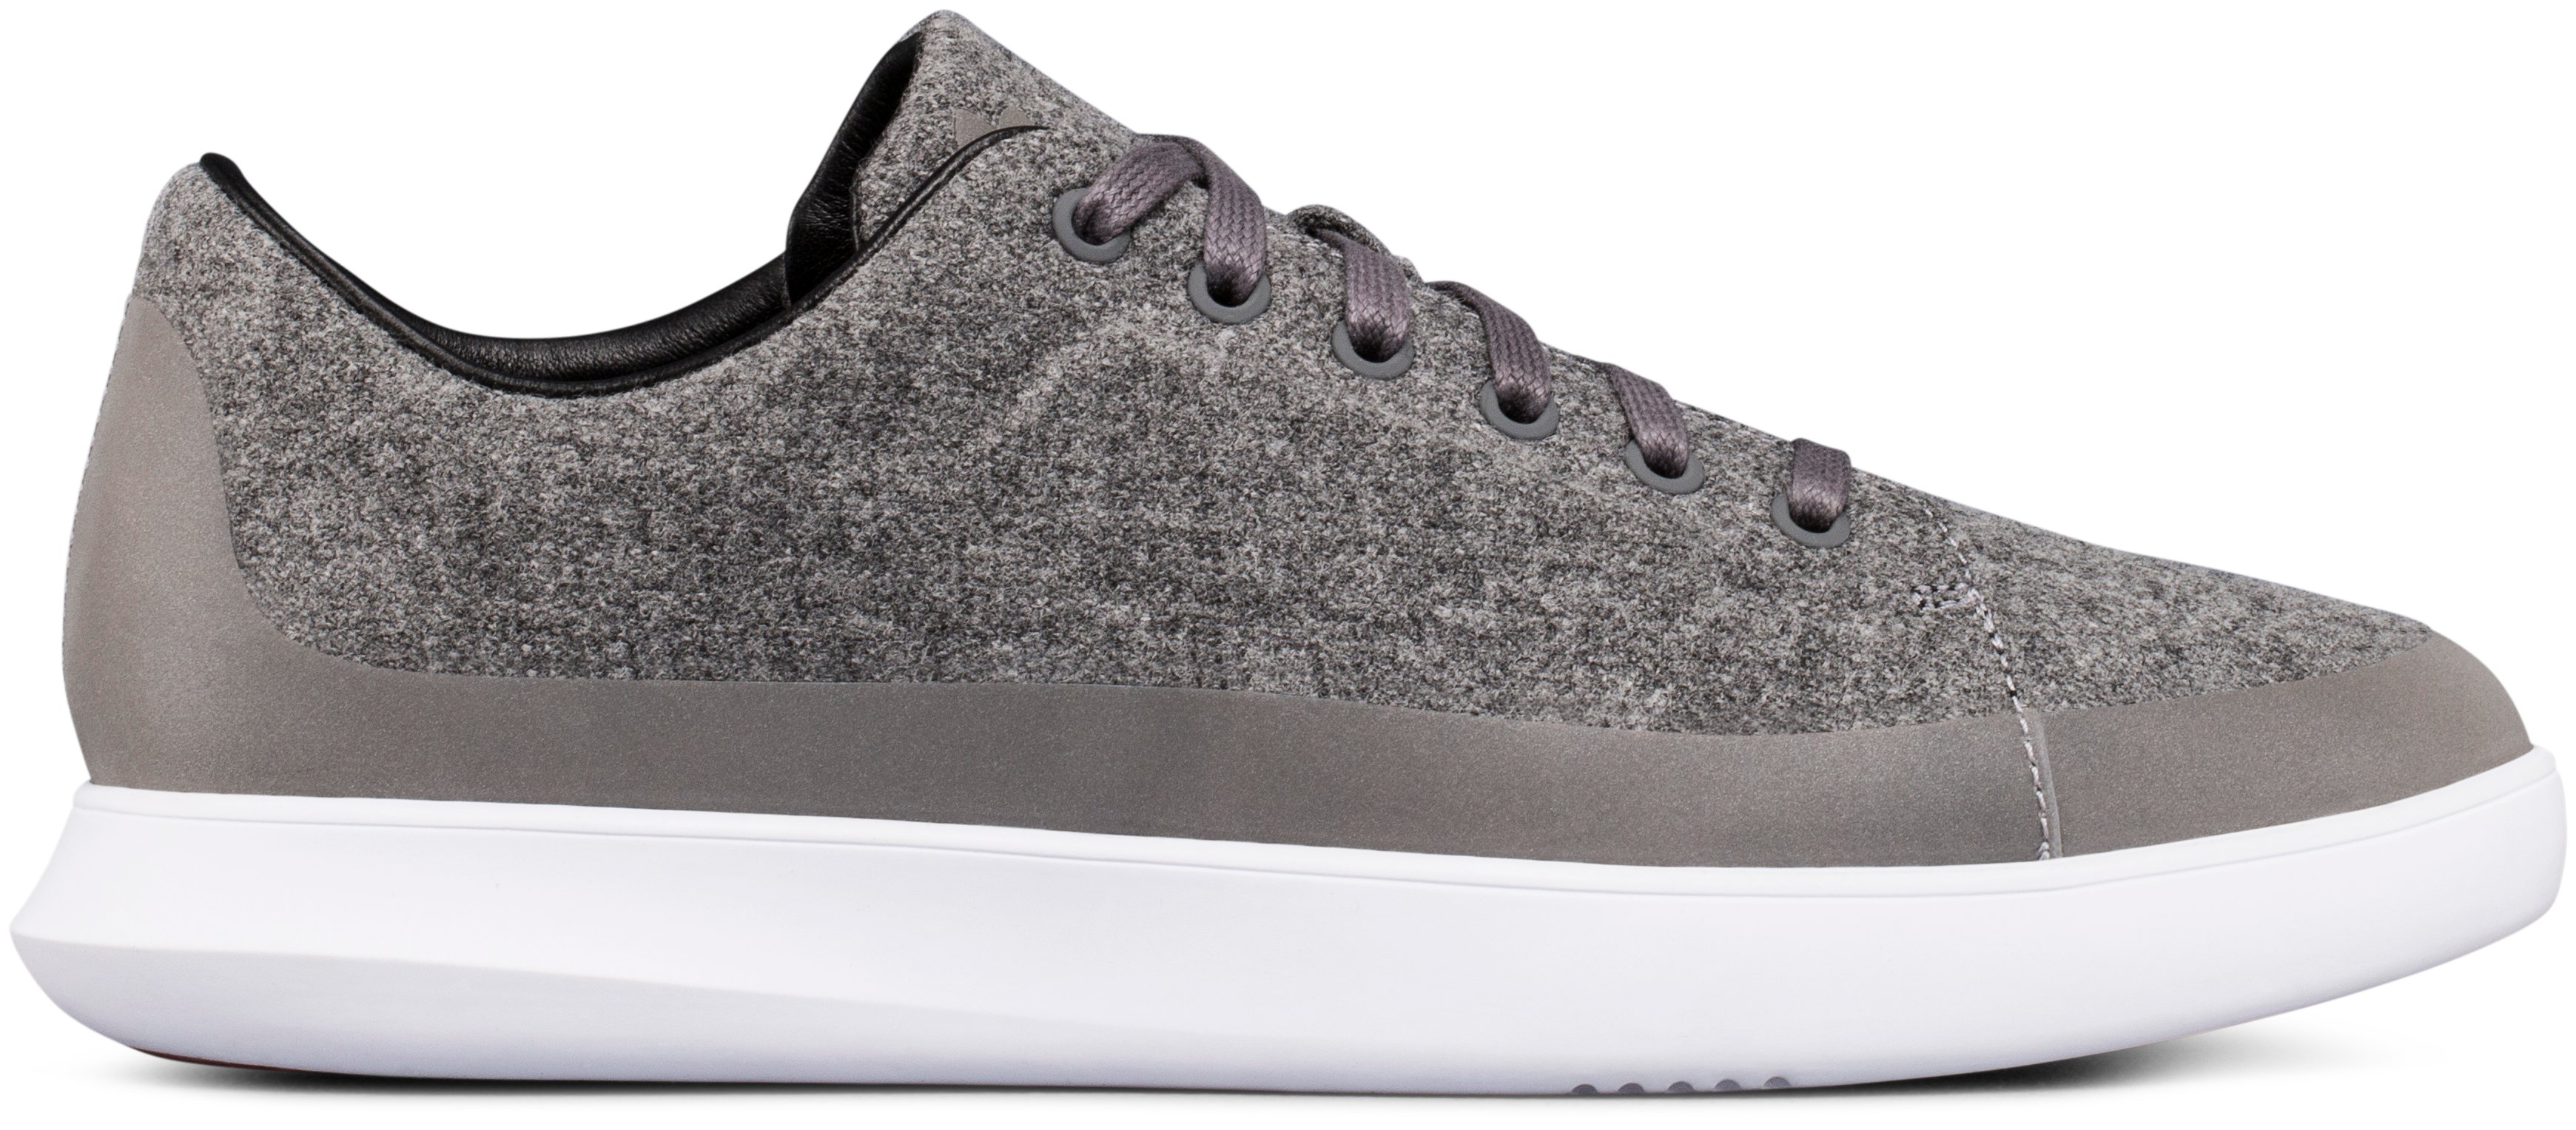 , UAS LIGHT HEATHER GRAY, zoomed